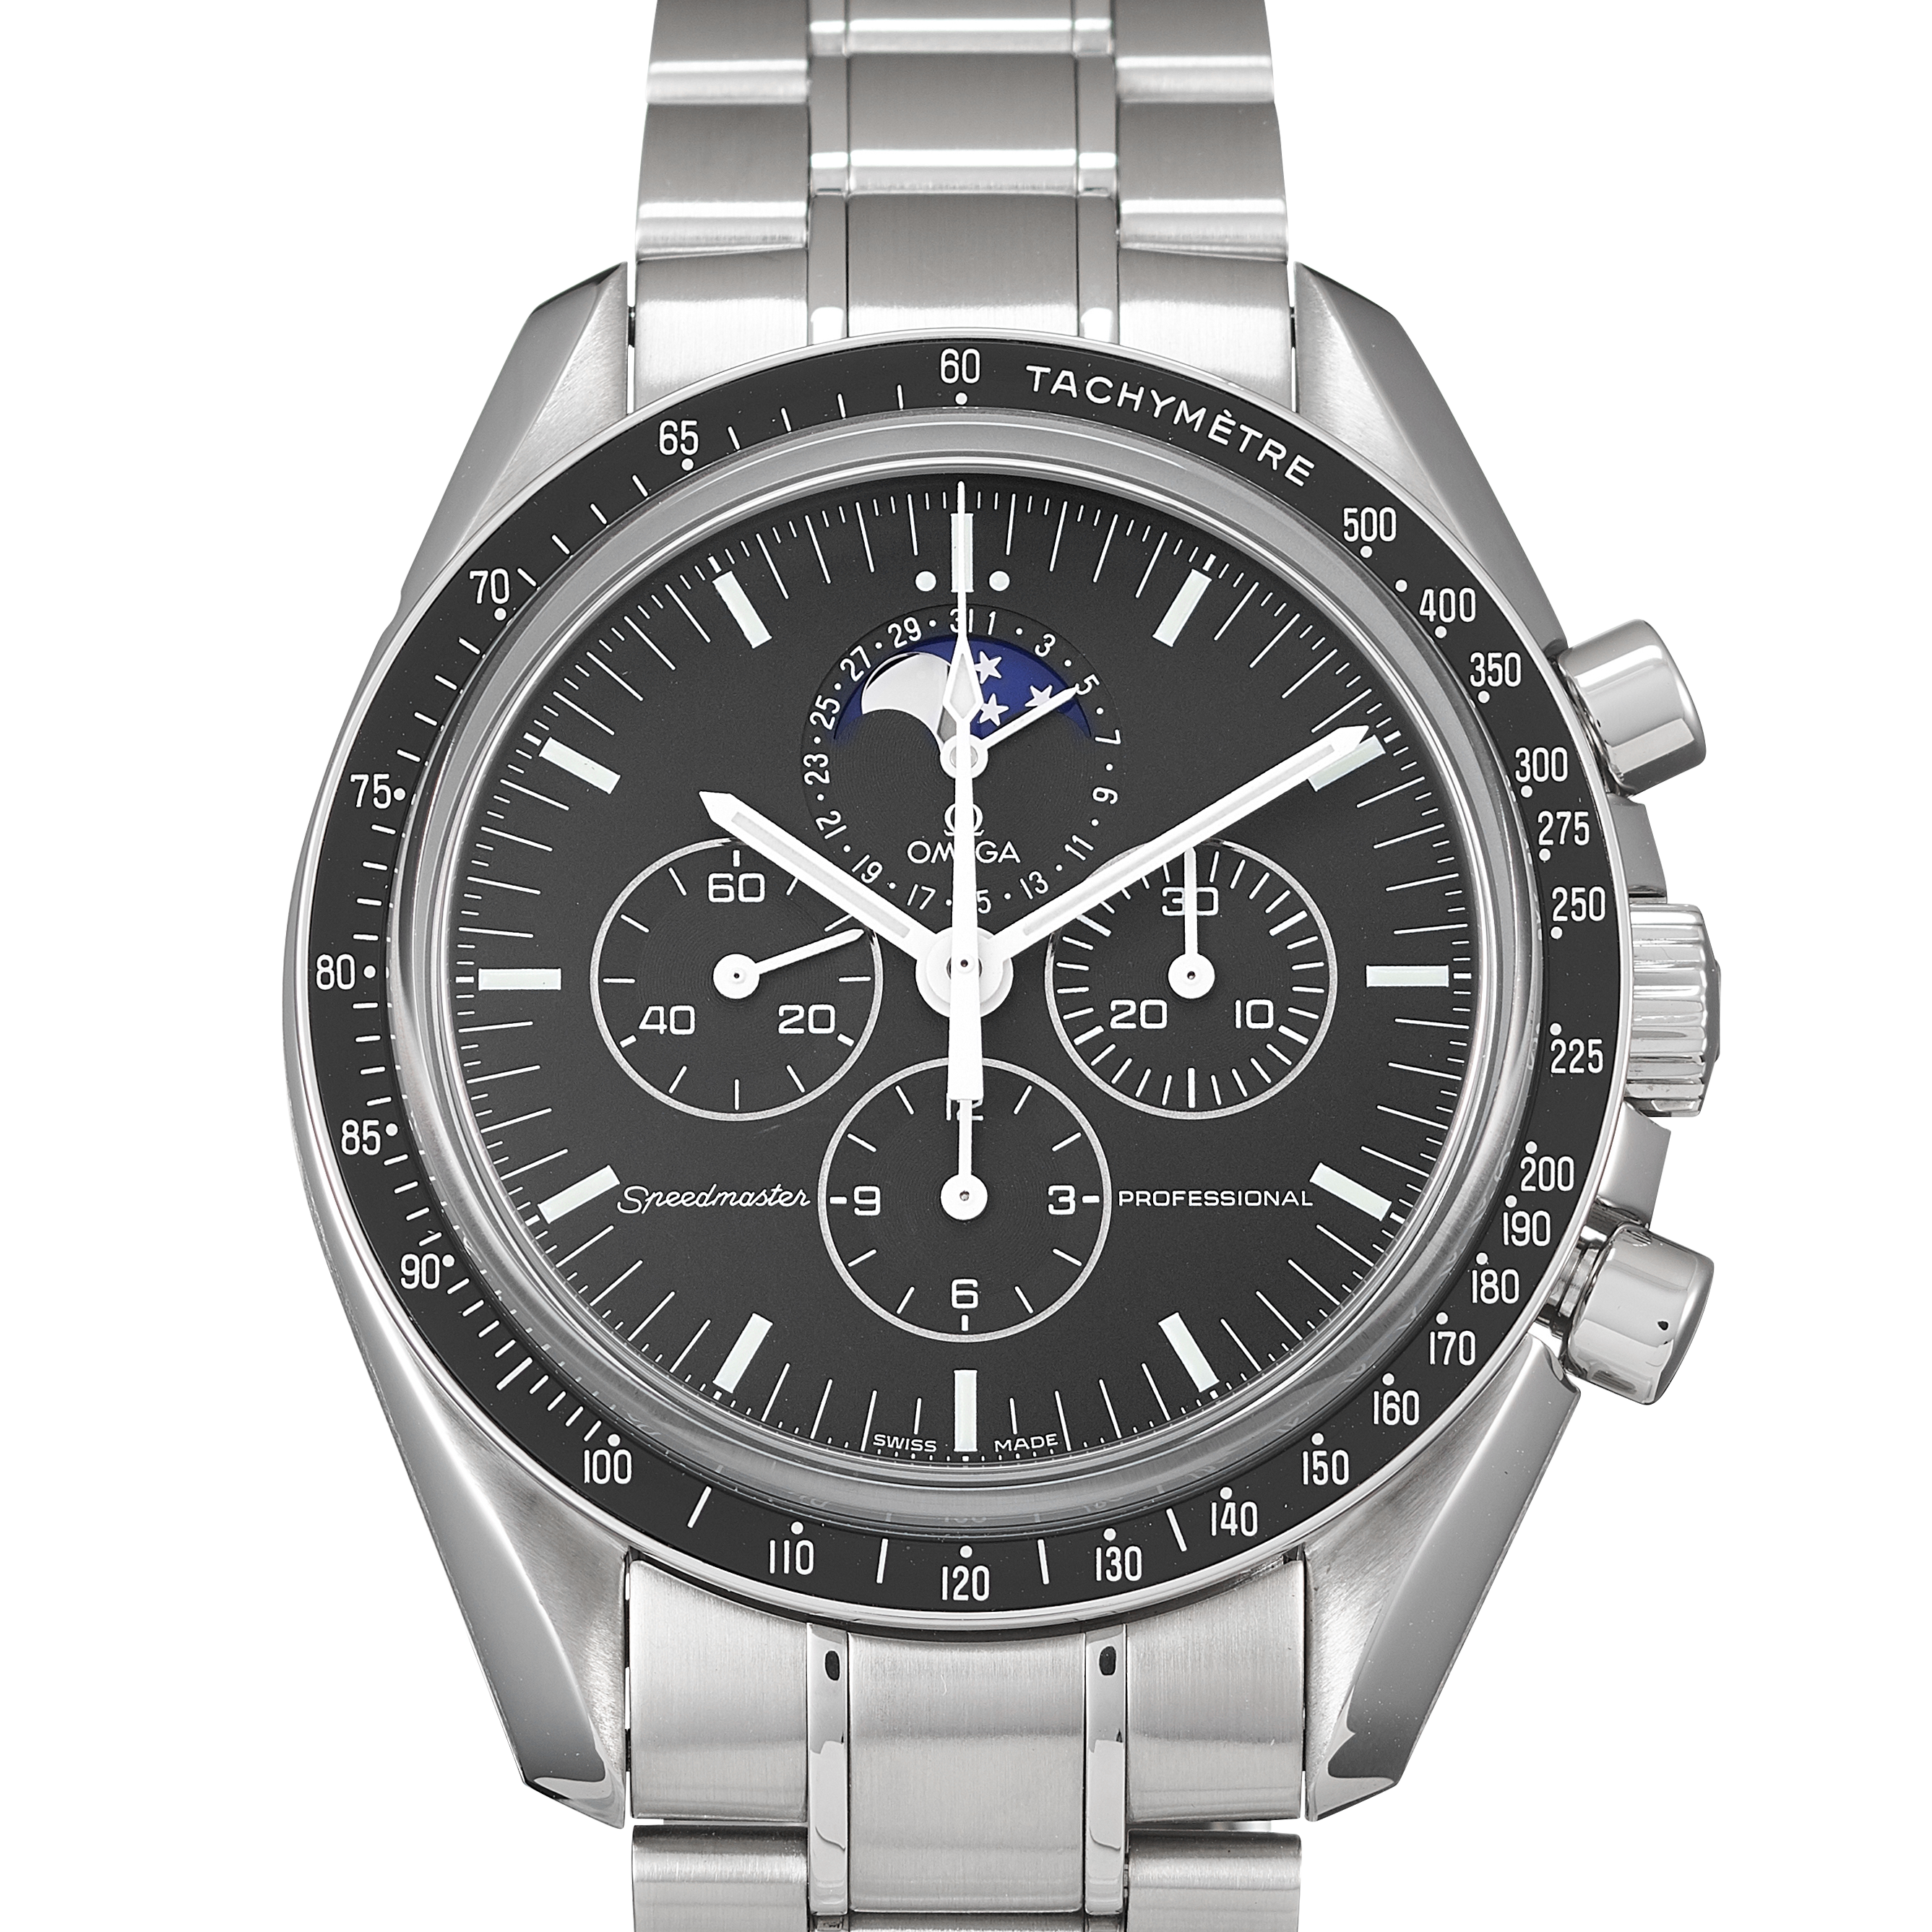 Omega Speedmaster Moonwatch Professional Chronograph Stainless Steel - 3576.50.00